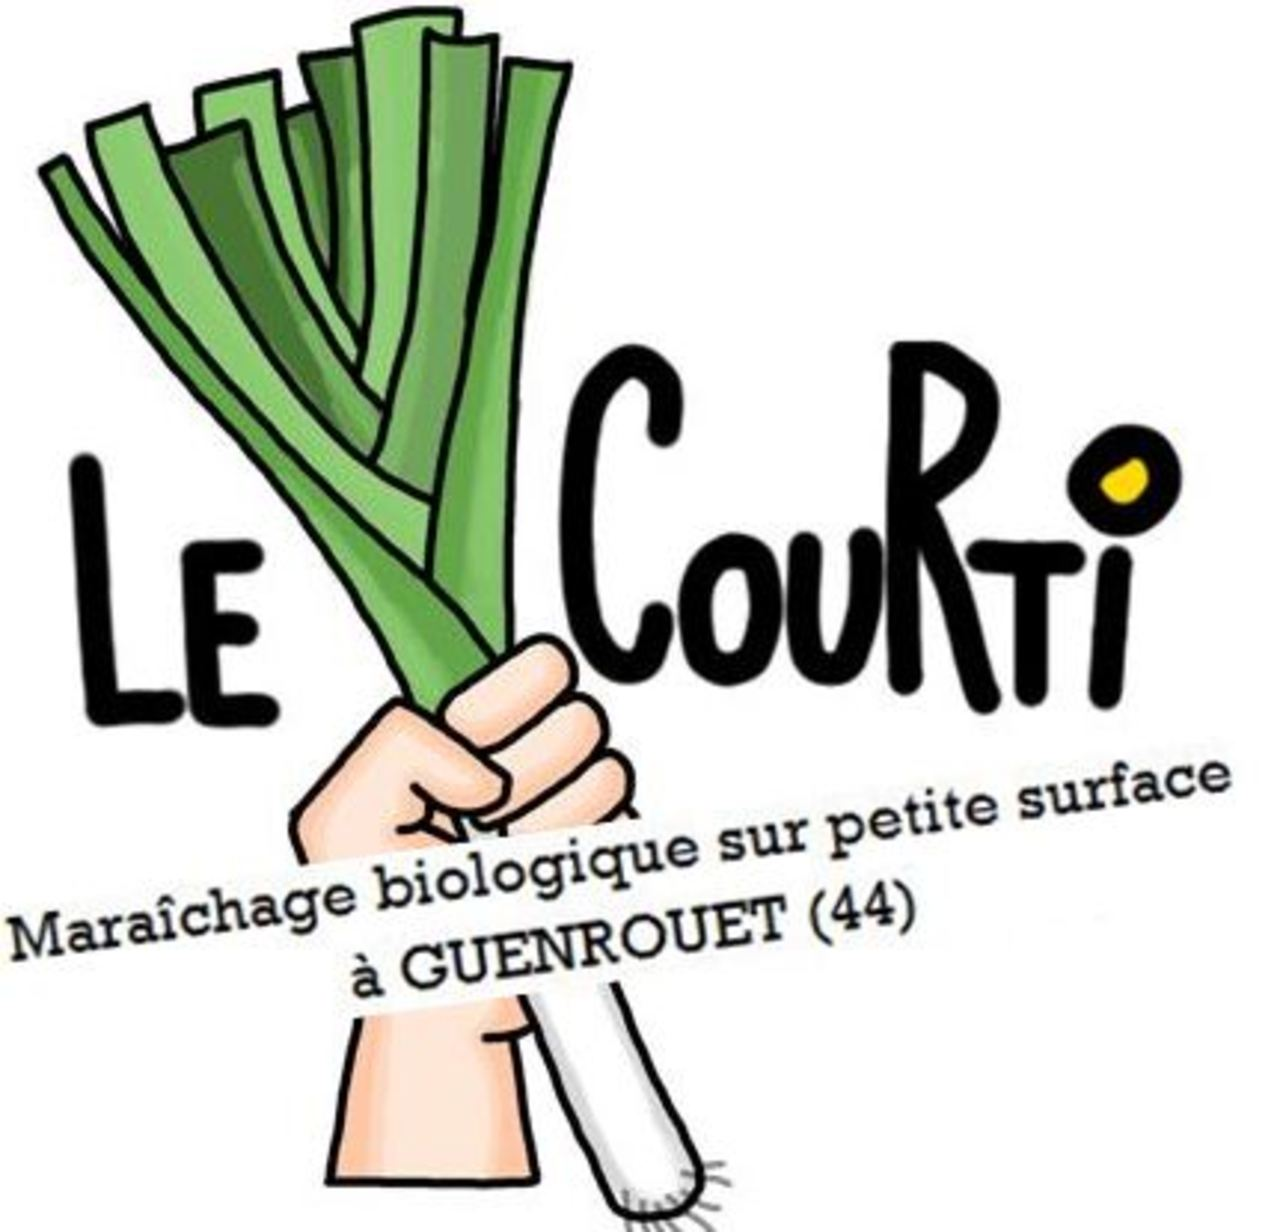 Logo courti crow guenrouet bis